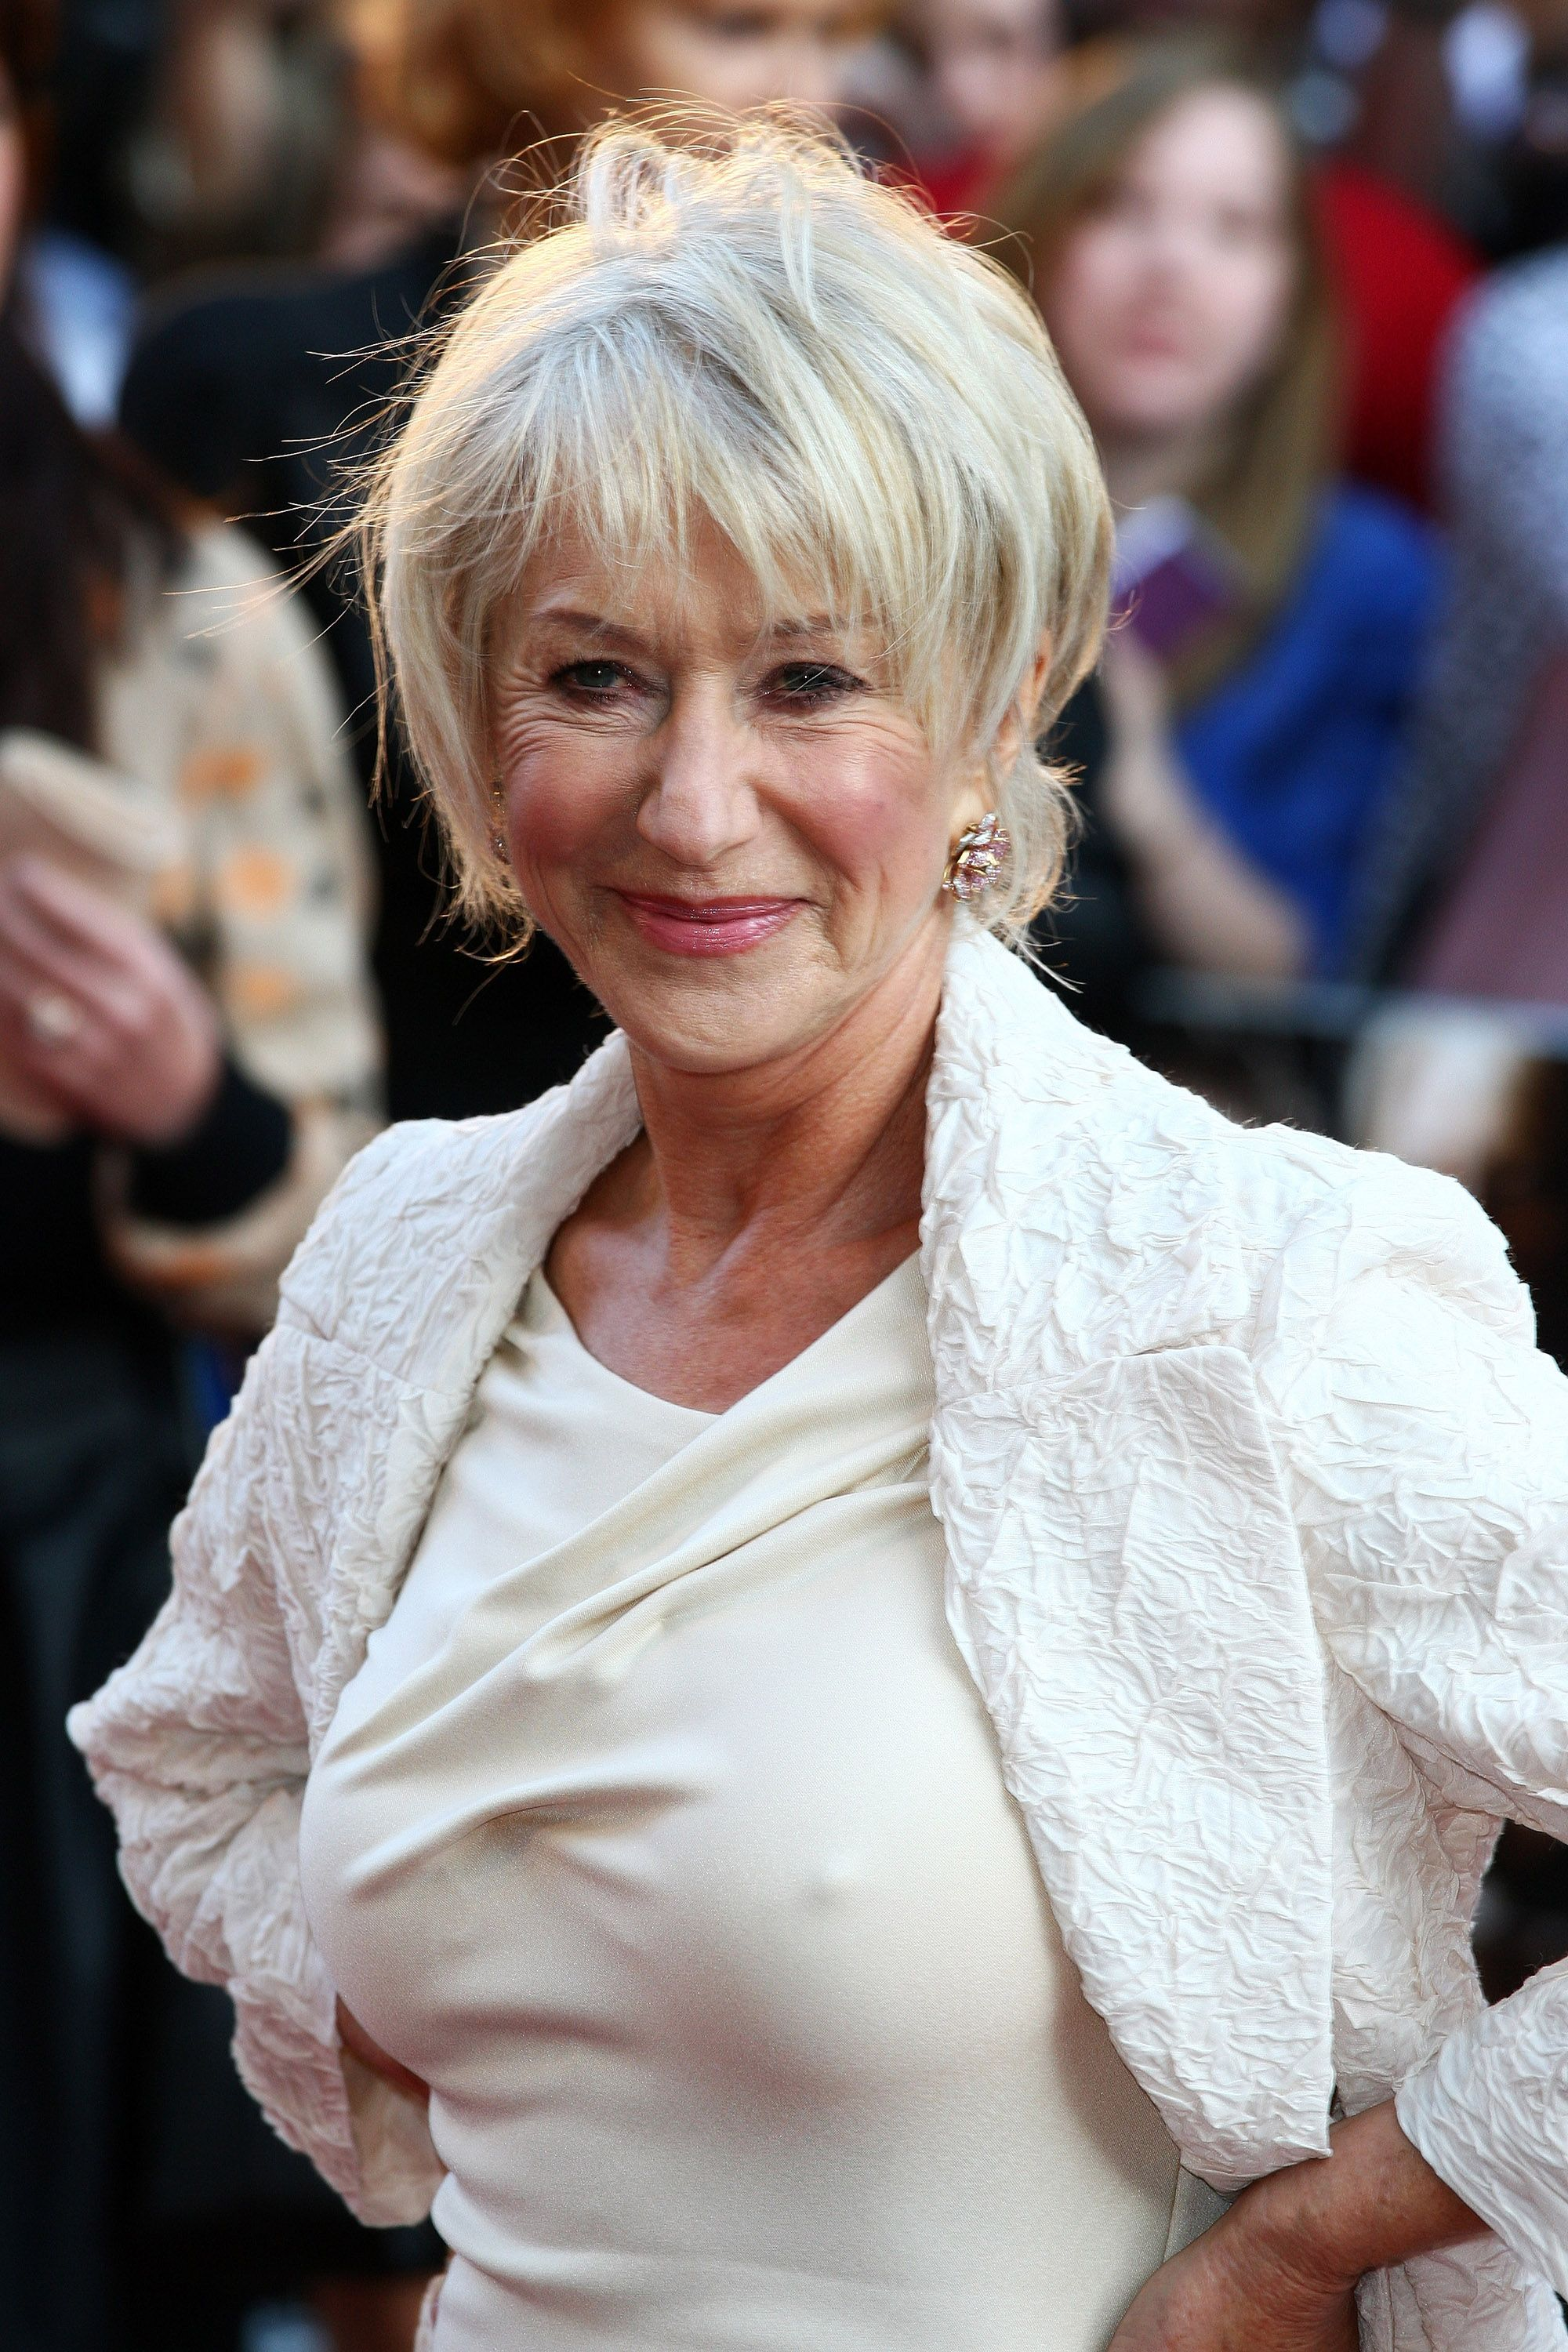 helen mirren imdbhelen mirren russian, helen mirren 2016, helen mirren instagram, helen mirren wiki, helen mirren movies, helen mirren films, helen mirren tattoo, helen mirren interview, helen mirren oscar, helen mirren queen, helen mirren 2017, helen mirren husband, helen mirren audience, helen mirren speaks russian, helen mirren imdb, helen mirren kinopoisk, helen mirren fast and furious 8, helen mirren theatre, helen mirren snl, helen mirren speaking russian